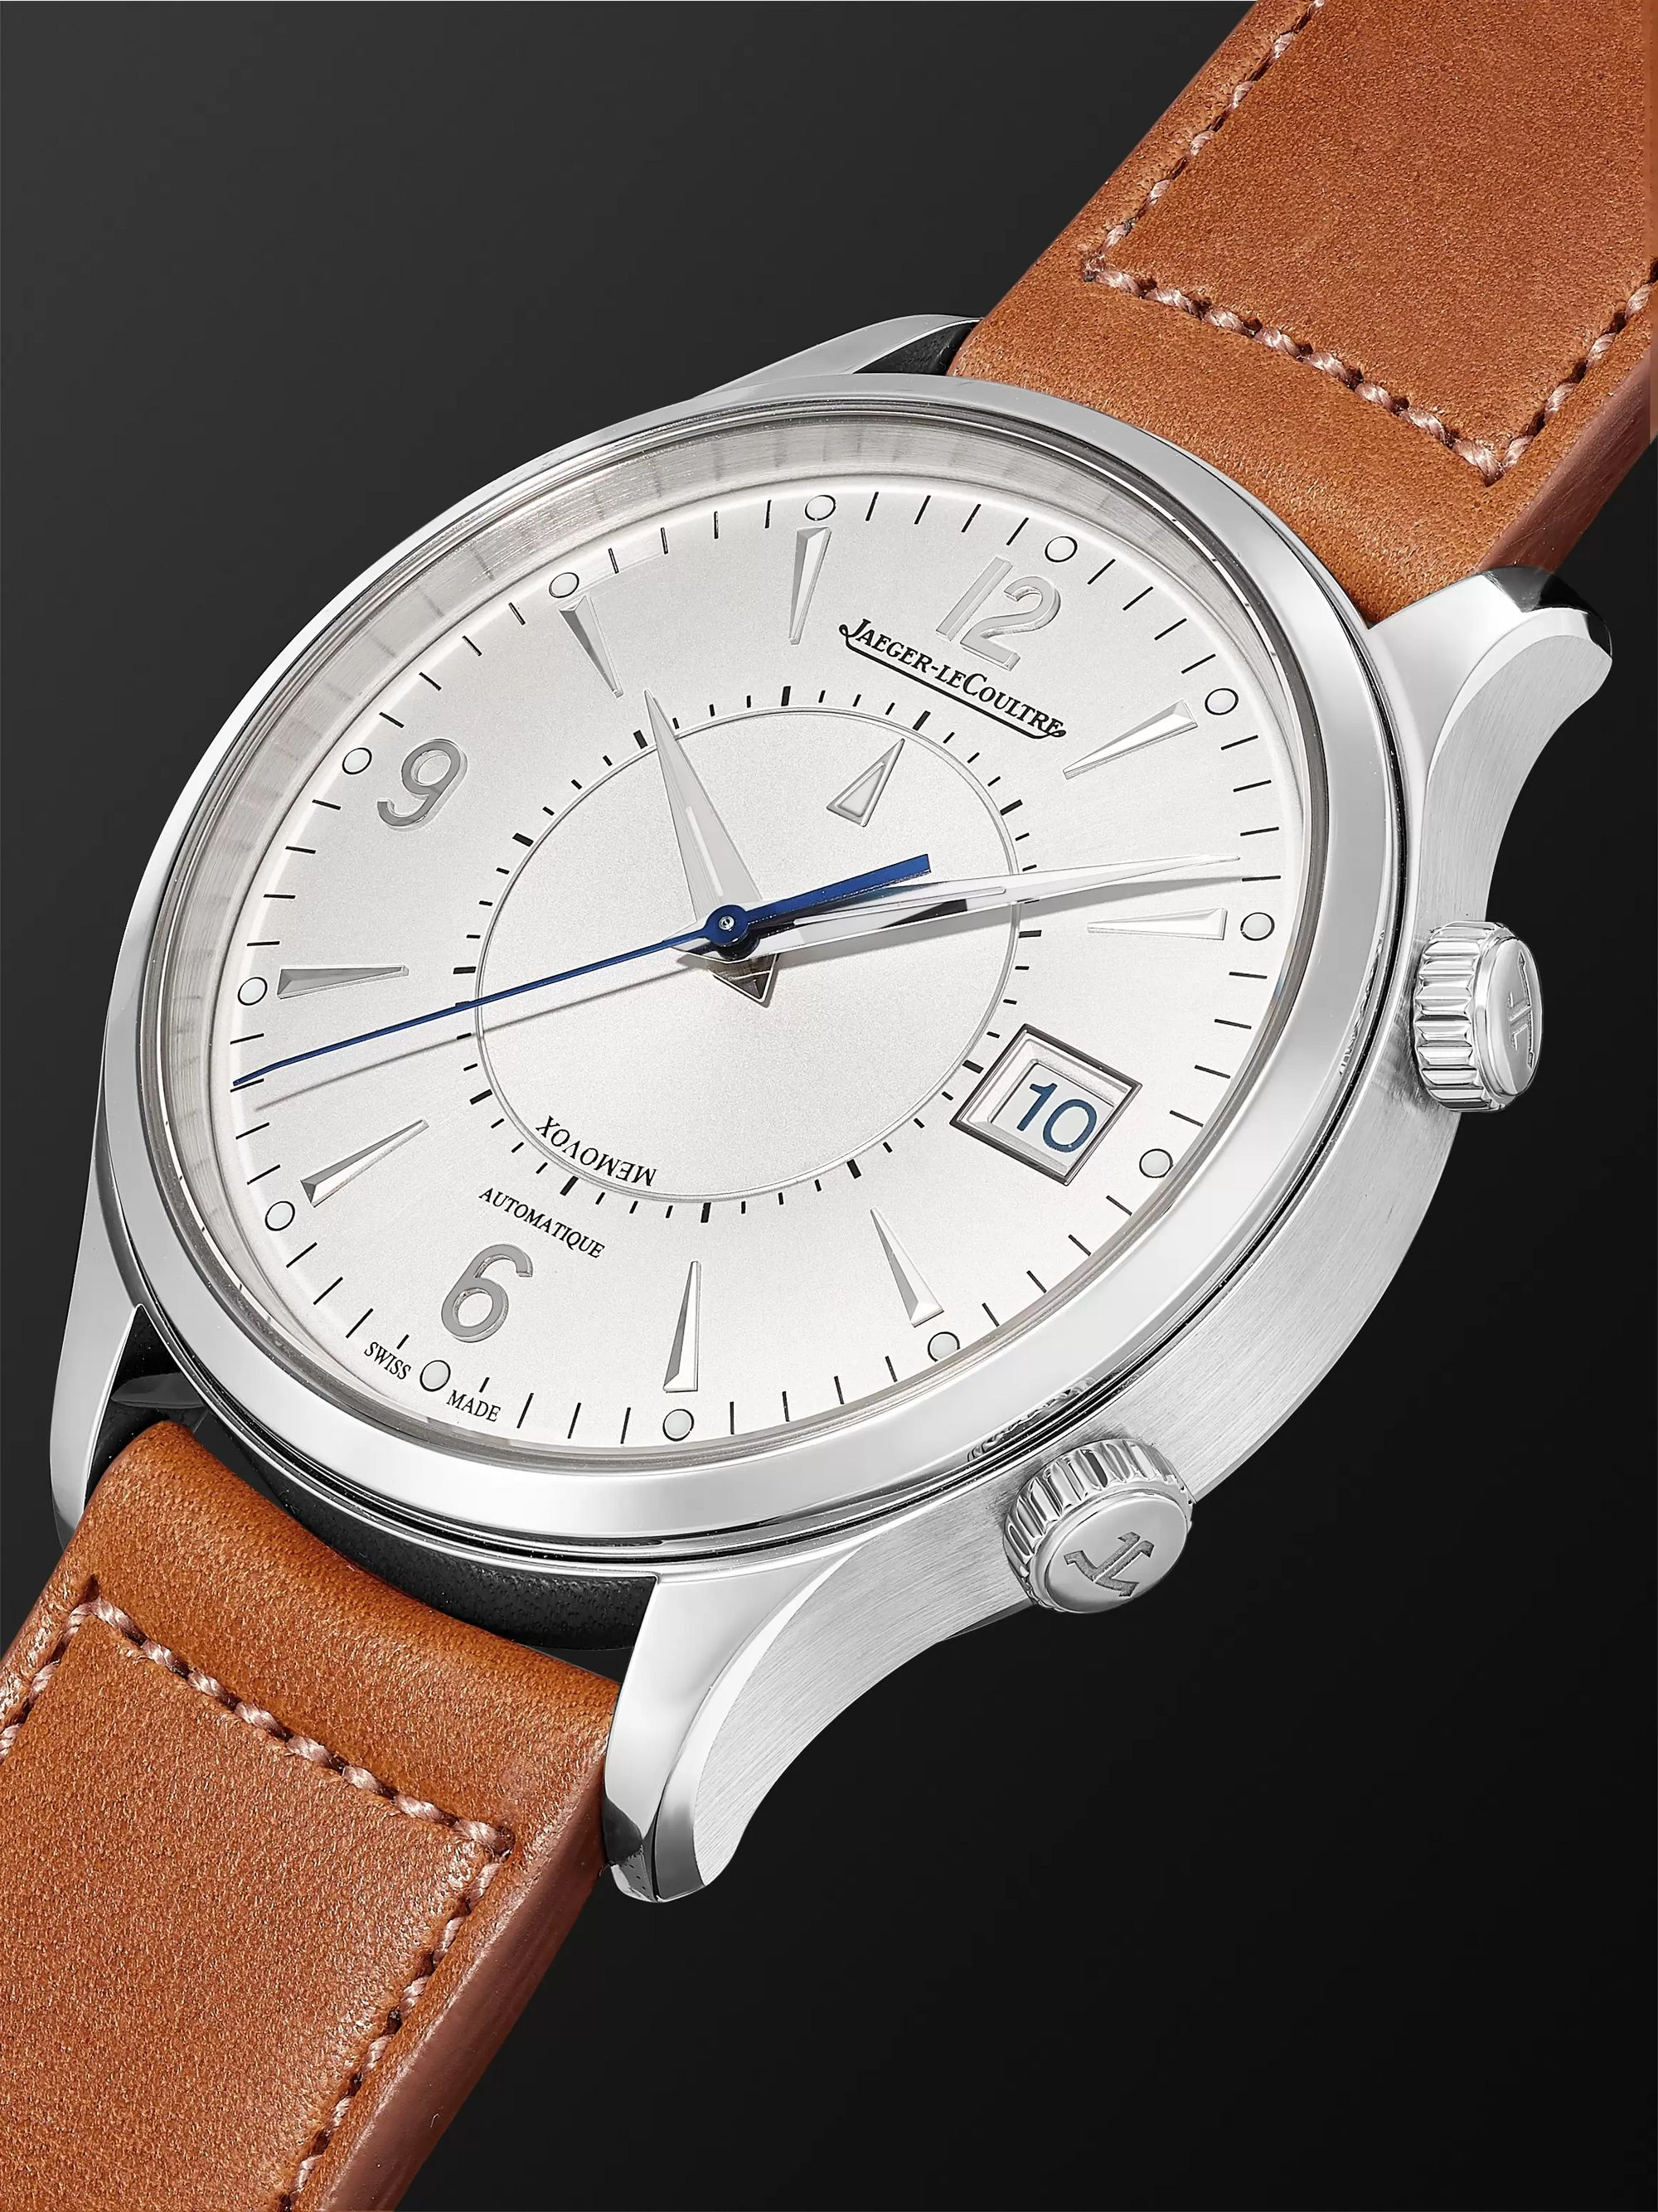 JAEGER-LECOULTRE Master Control Memovox Automatic 40mm Stainless Steel and Leather Watch, Ref. No. Q4118420